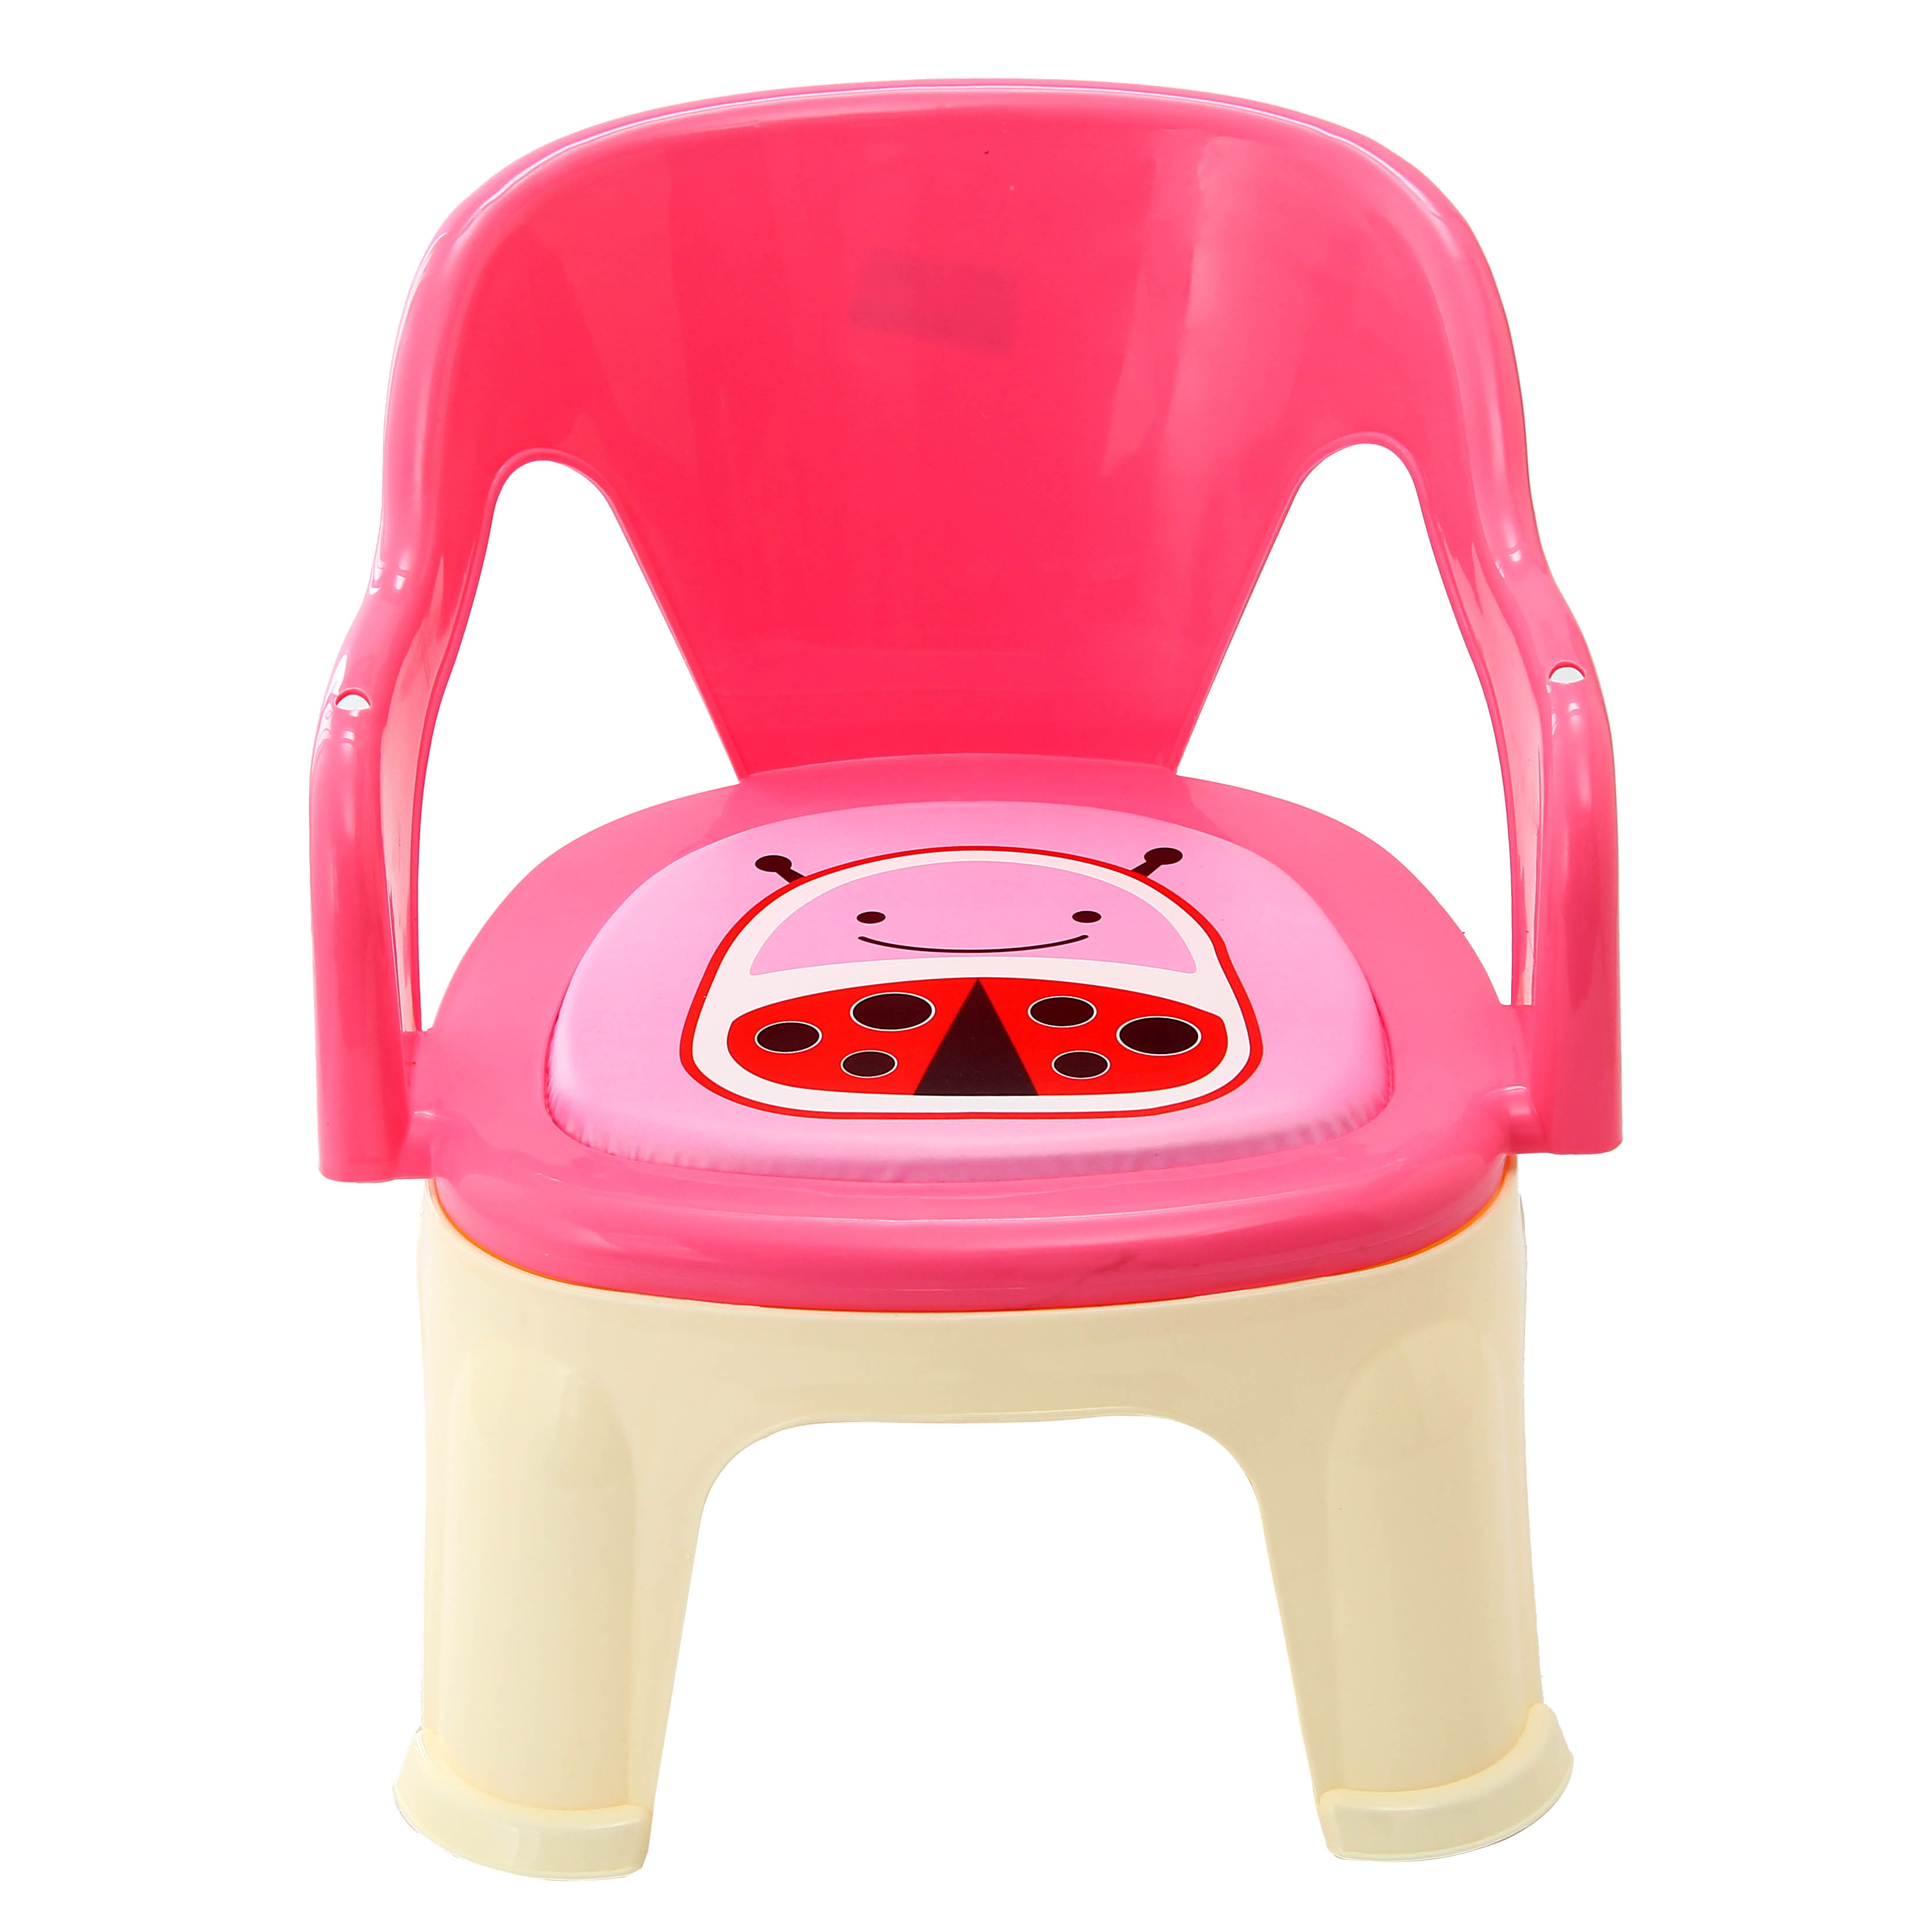 USD 16.97] Children's chairs to eat baby dining chair armchair ...